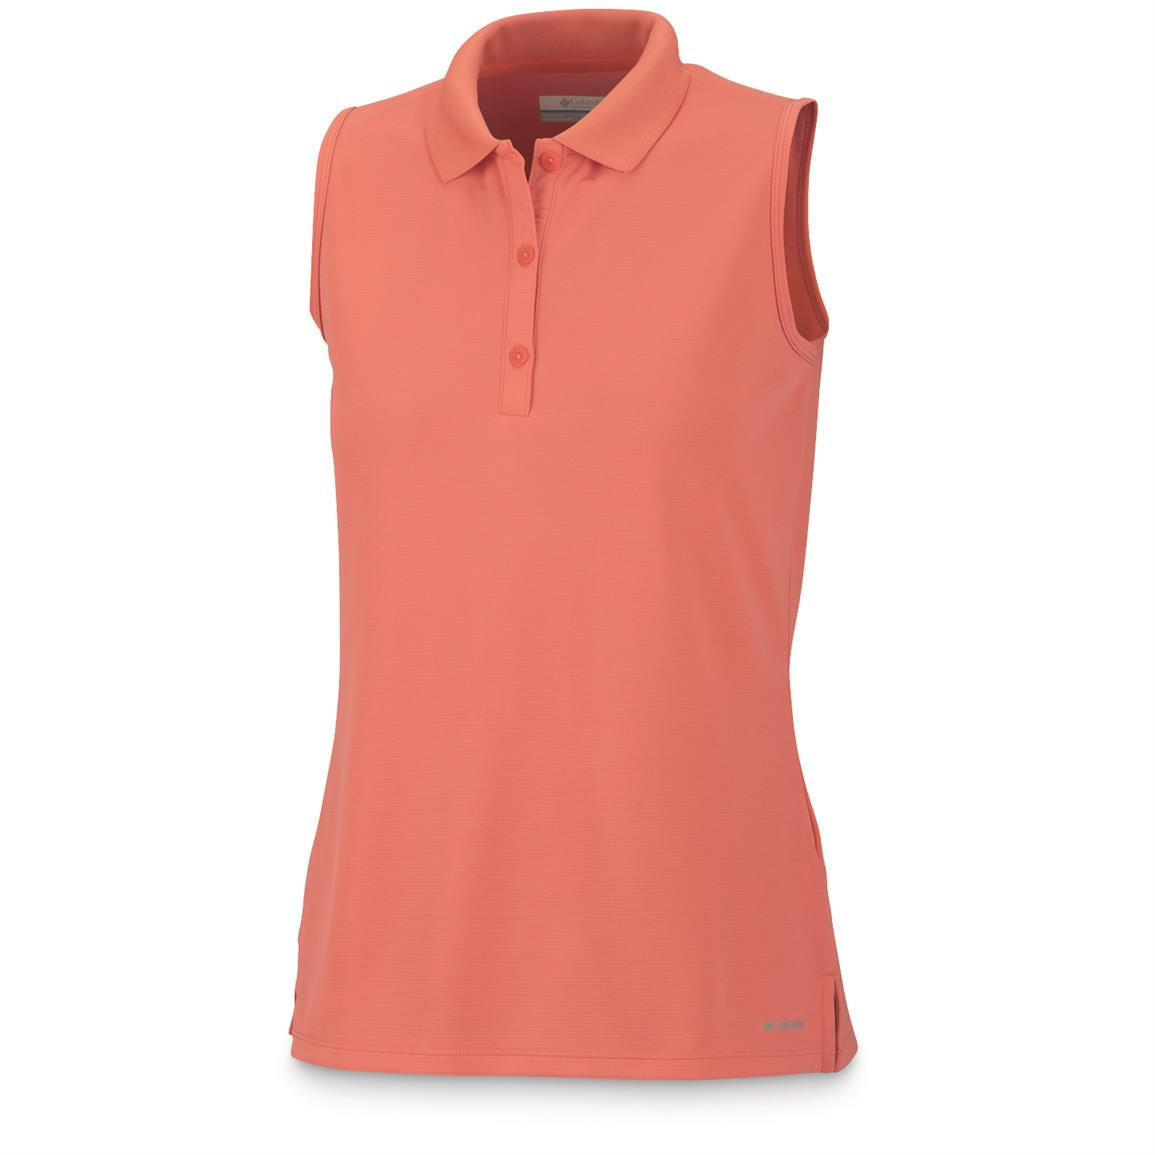 Columbia Women's Innisfree Sleeveless Polo Shirt, Melonde